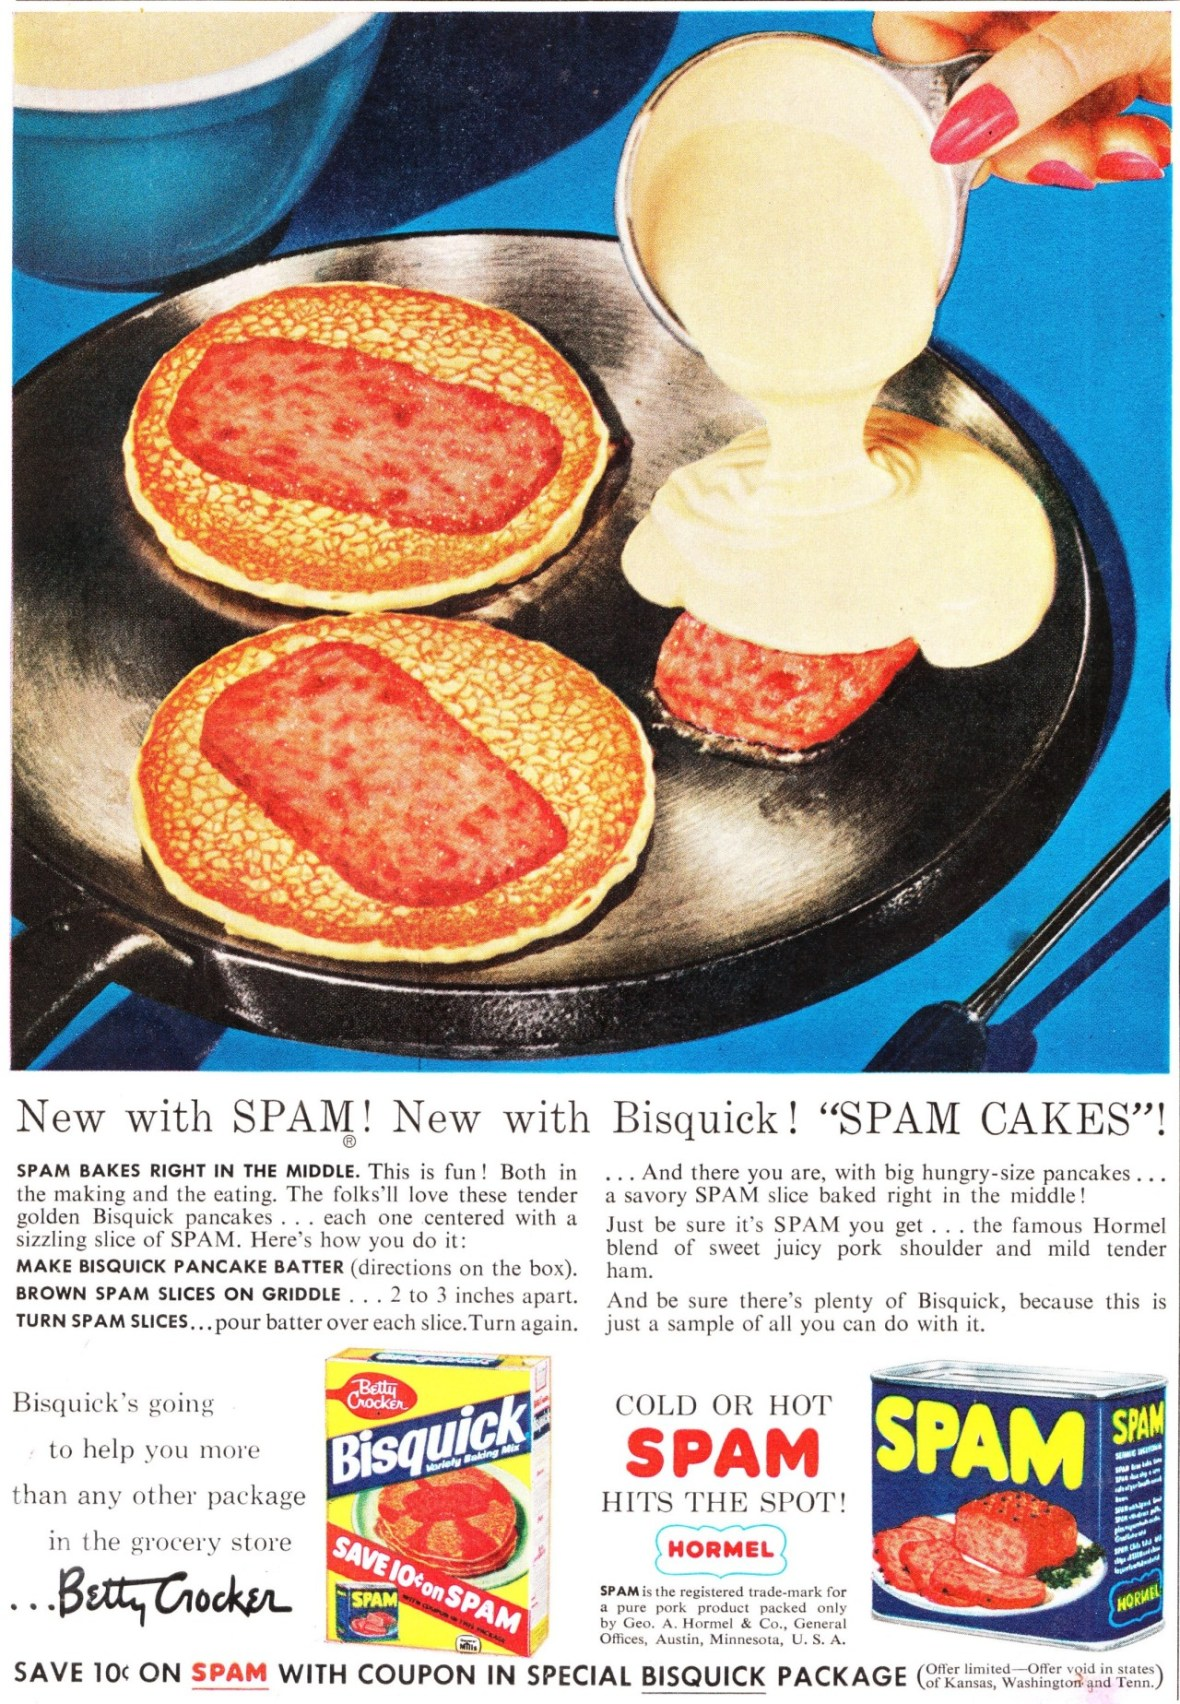 Bisquick and Spam - 1950s